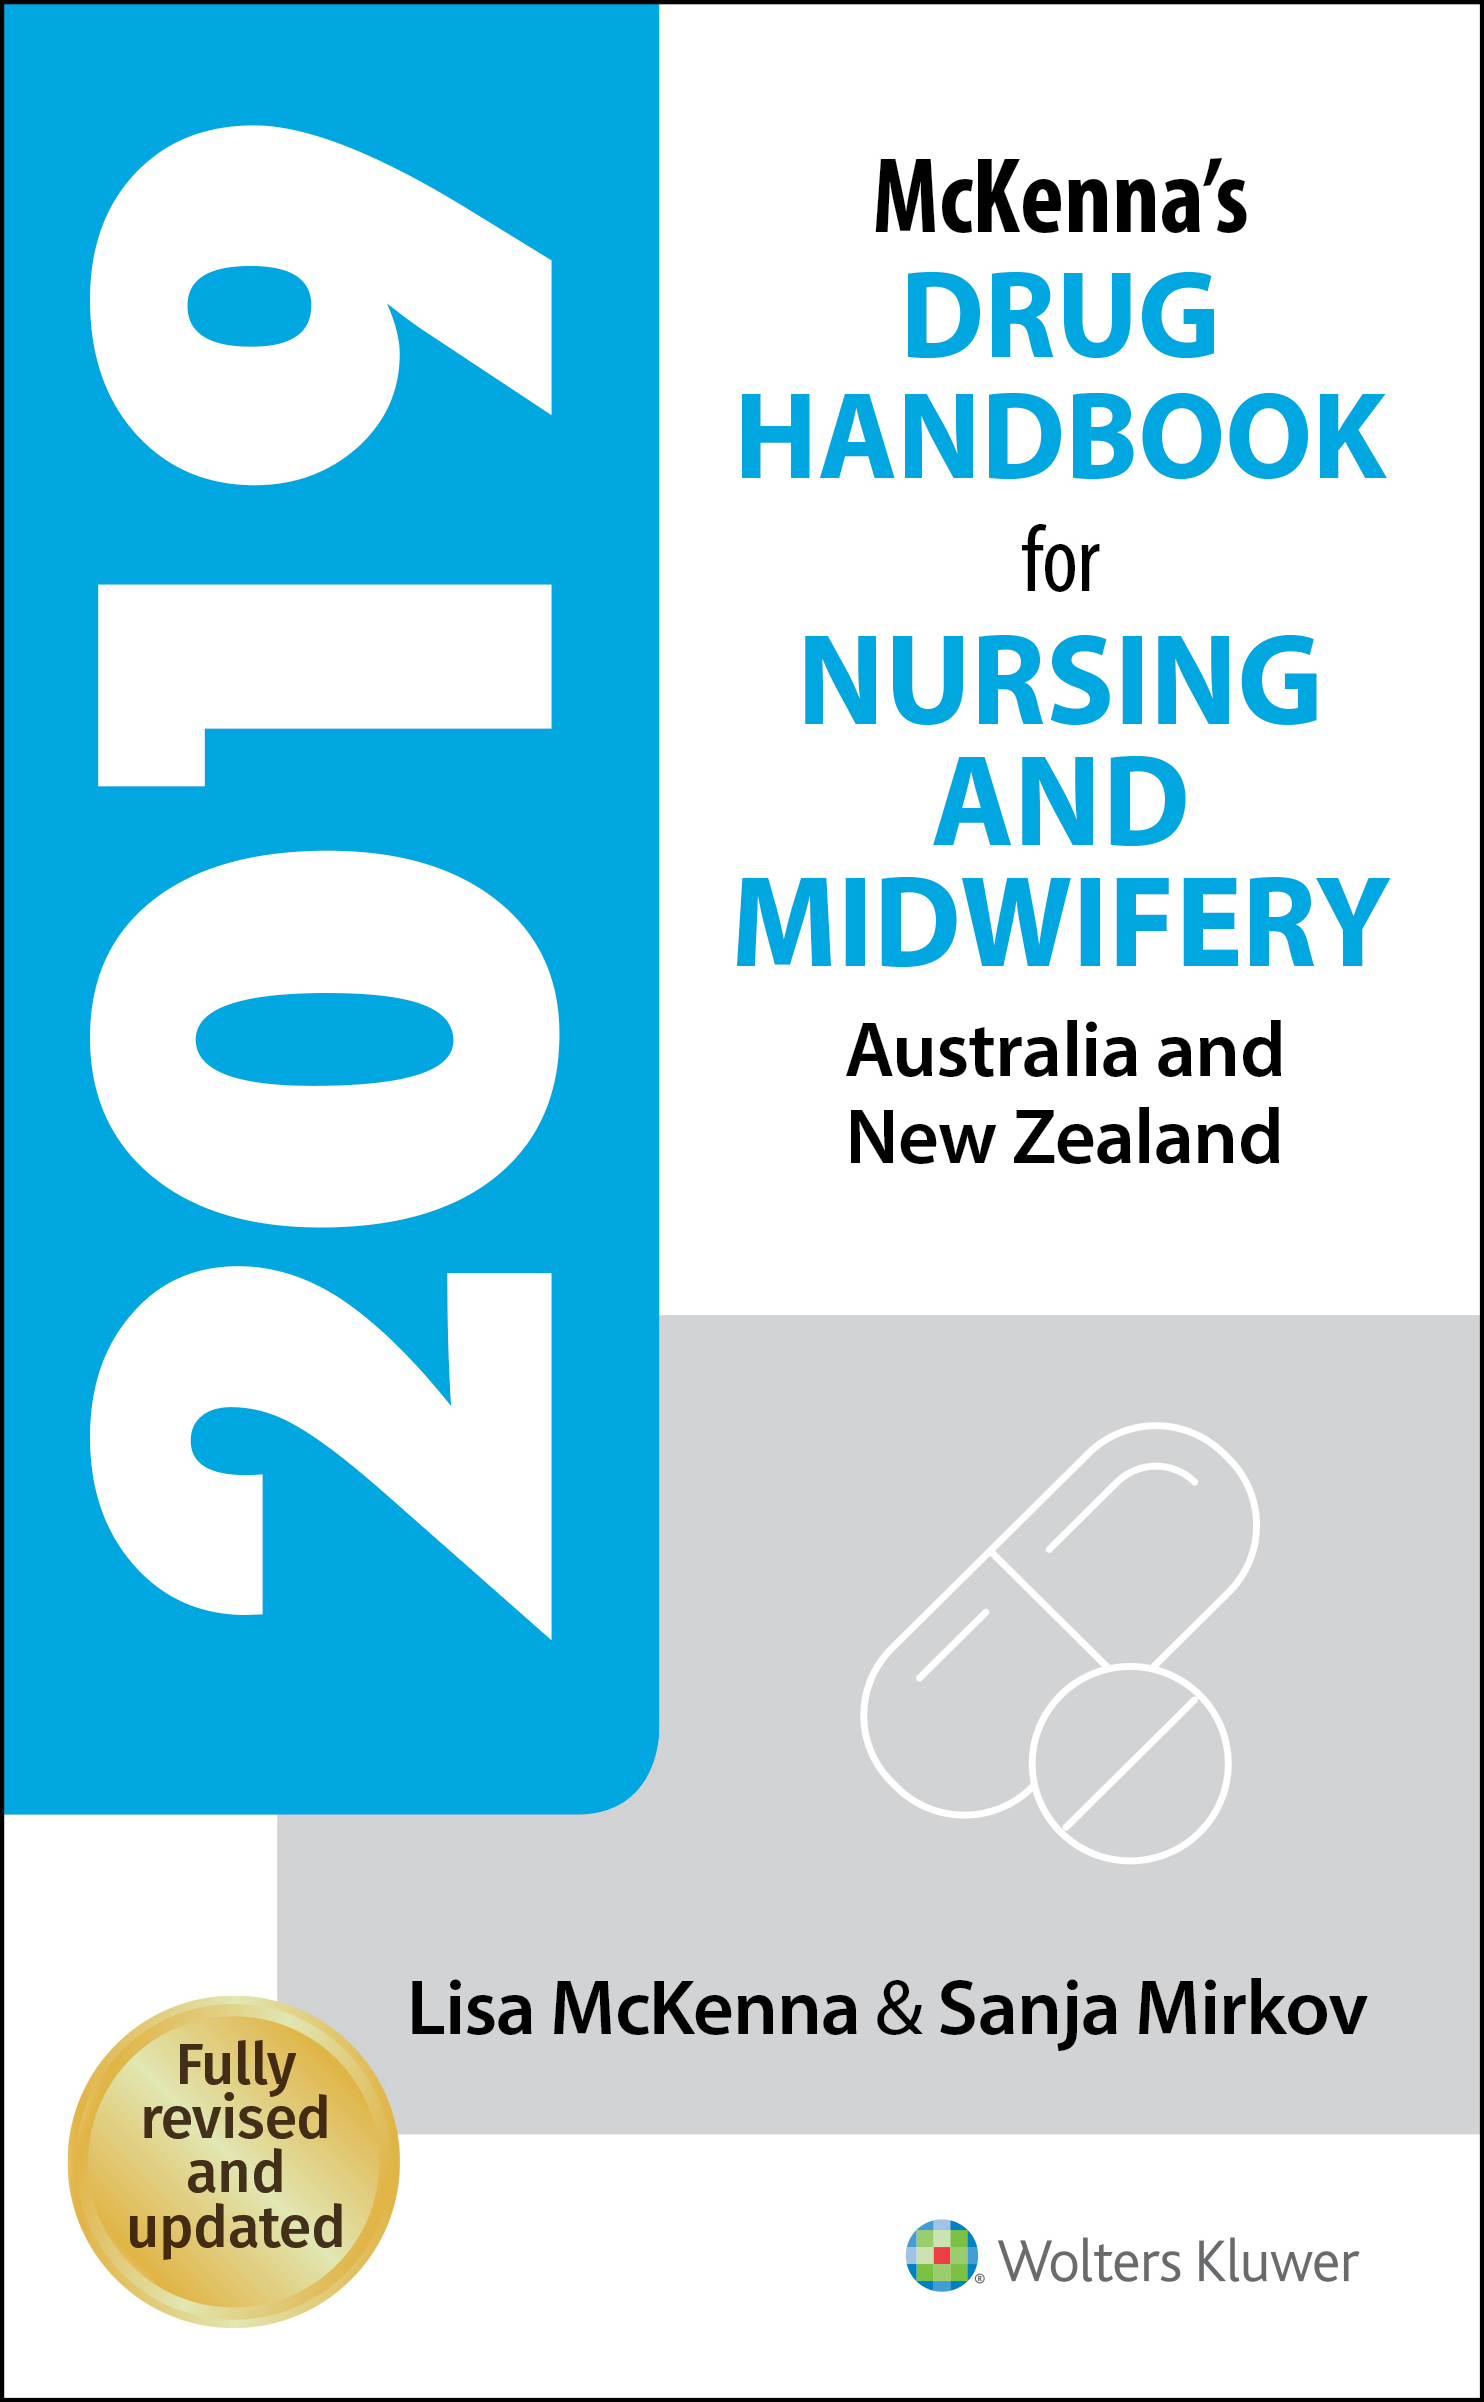 Australia and New Zealand McKenna's Drug Handbook for Nursing and Midwifery 2019